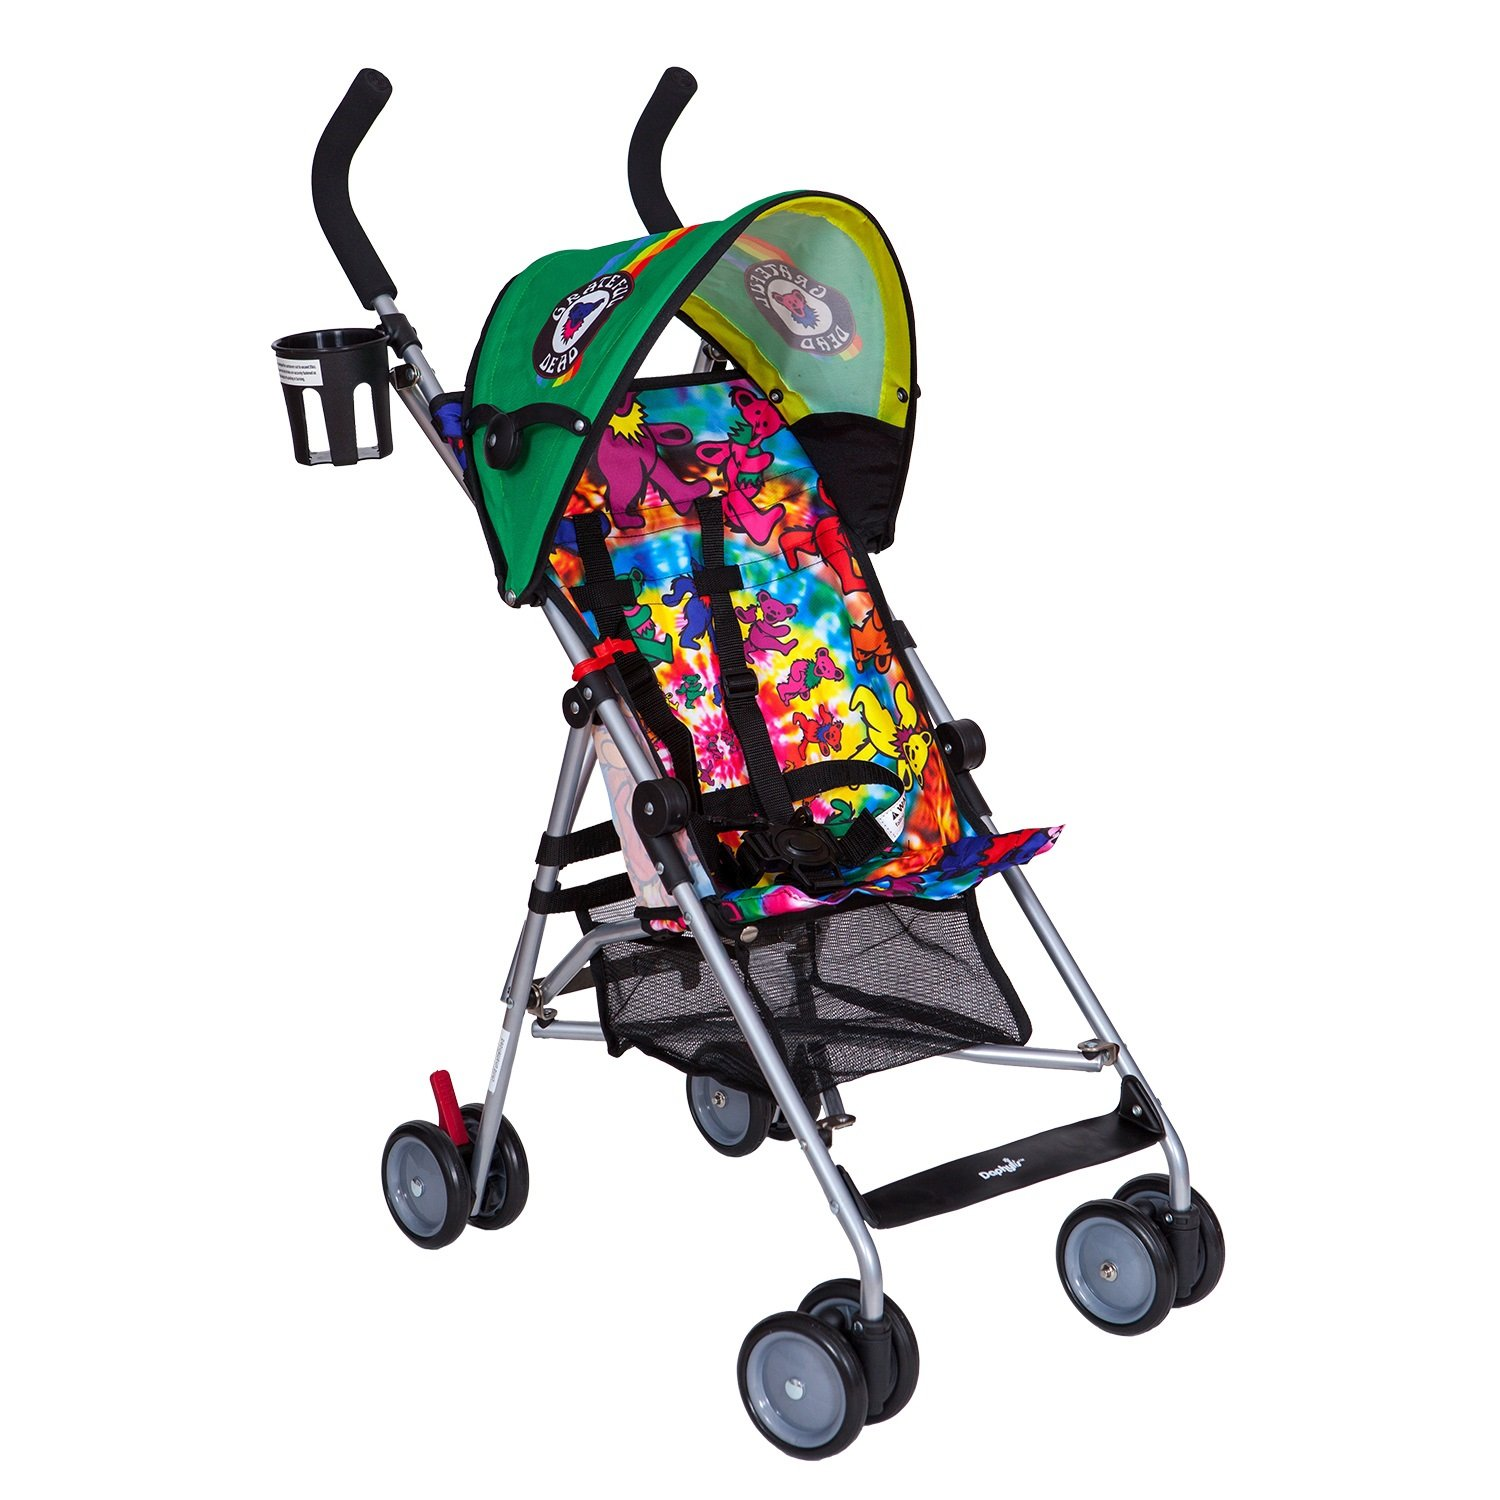 Grateful Dead Ultralight Umbrella Stroller, with Canopy, and Shoulder Strap by Daphyl s